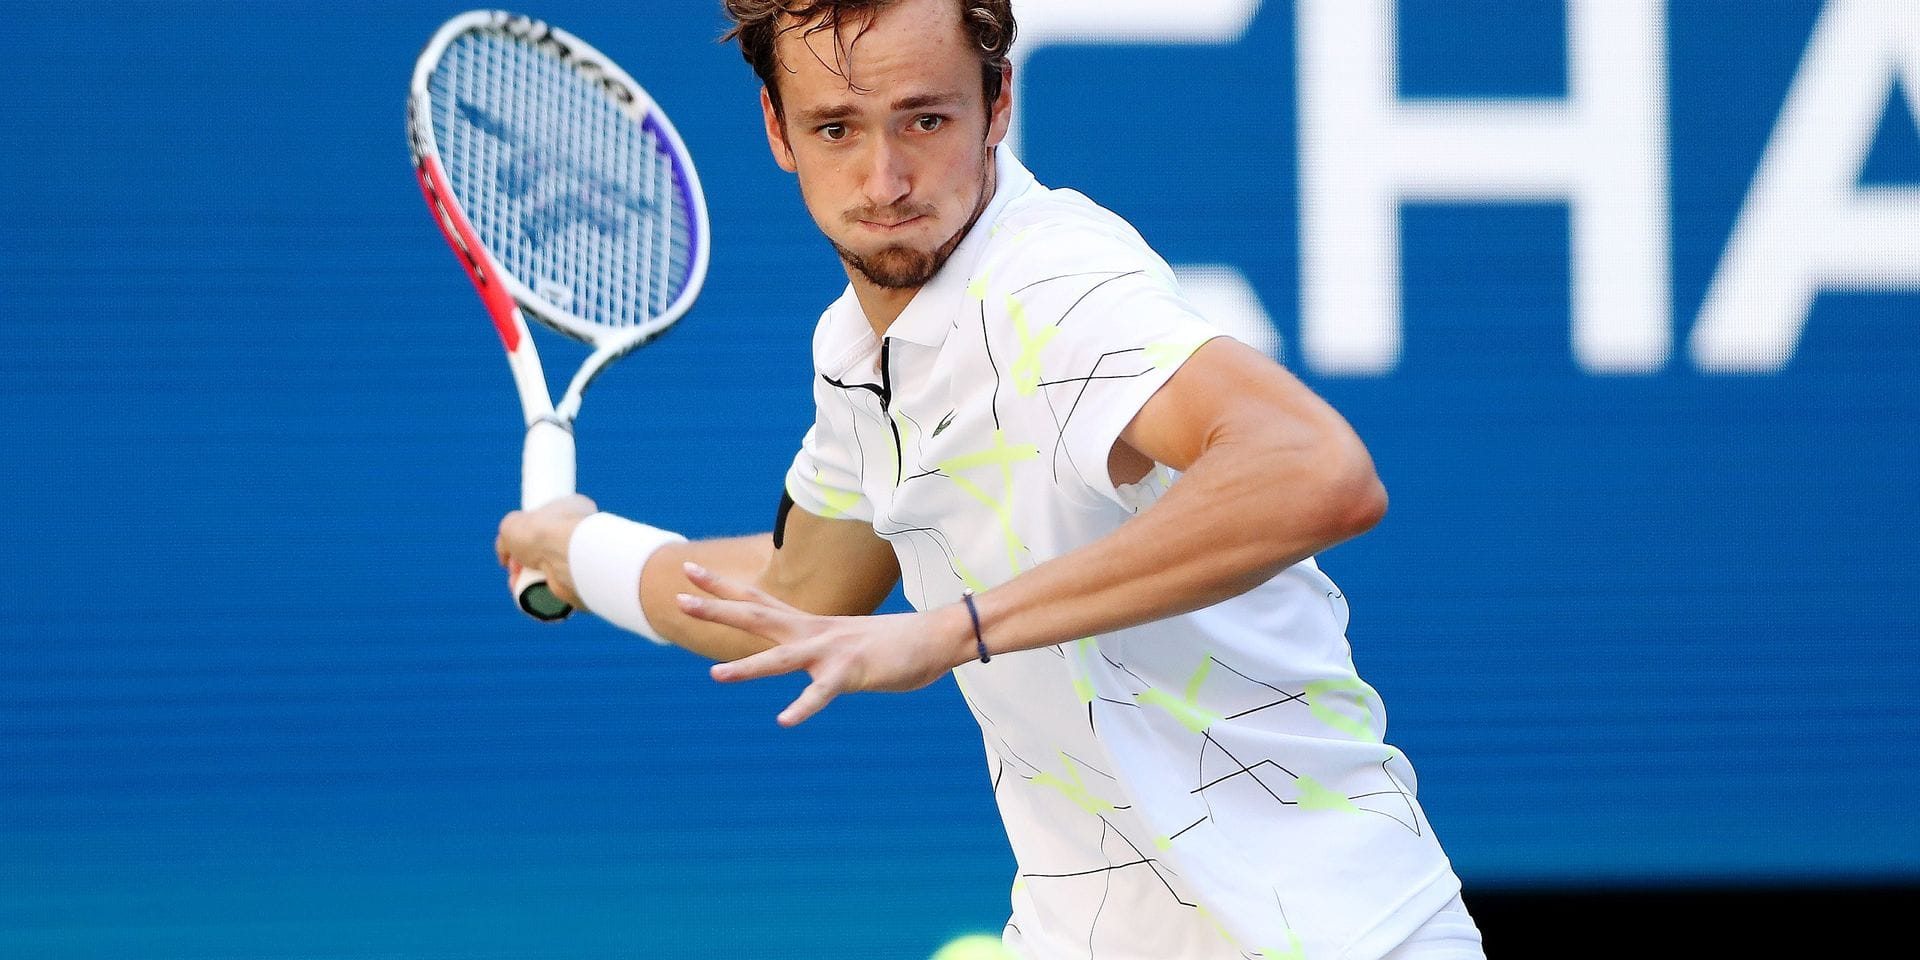 NEW YORK, NEW YORK - SEPTEMBER 03: Daniil Medvedev of Russia returns a shot during his Men's Singles quarterfinal match against Stan Wawrinka of Switzerland on day nine of the 2019 US Open at the USTA Billie Jean King National Tennis Center on September 03, 2019 in the Queens borough of New York City. Matthew Stockman/Getty Images/AFP == FOR NEWSPAPERS, INTERNET, TELCOS & TELEVISION USE ONLY ==